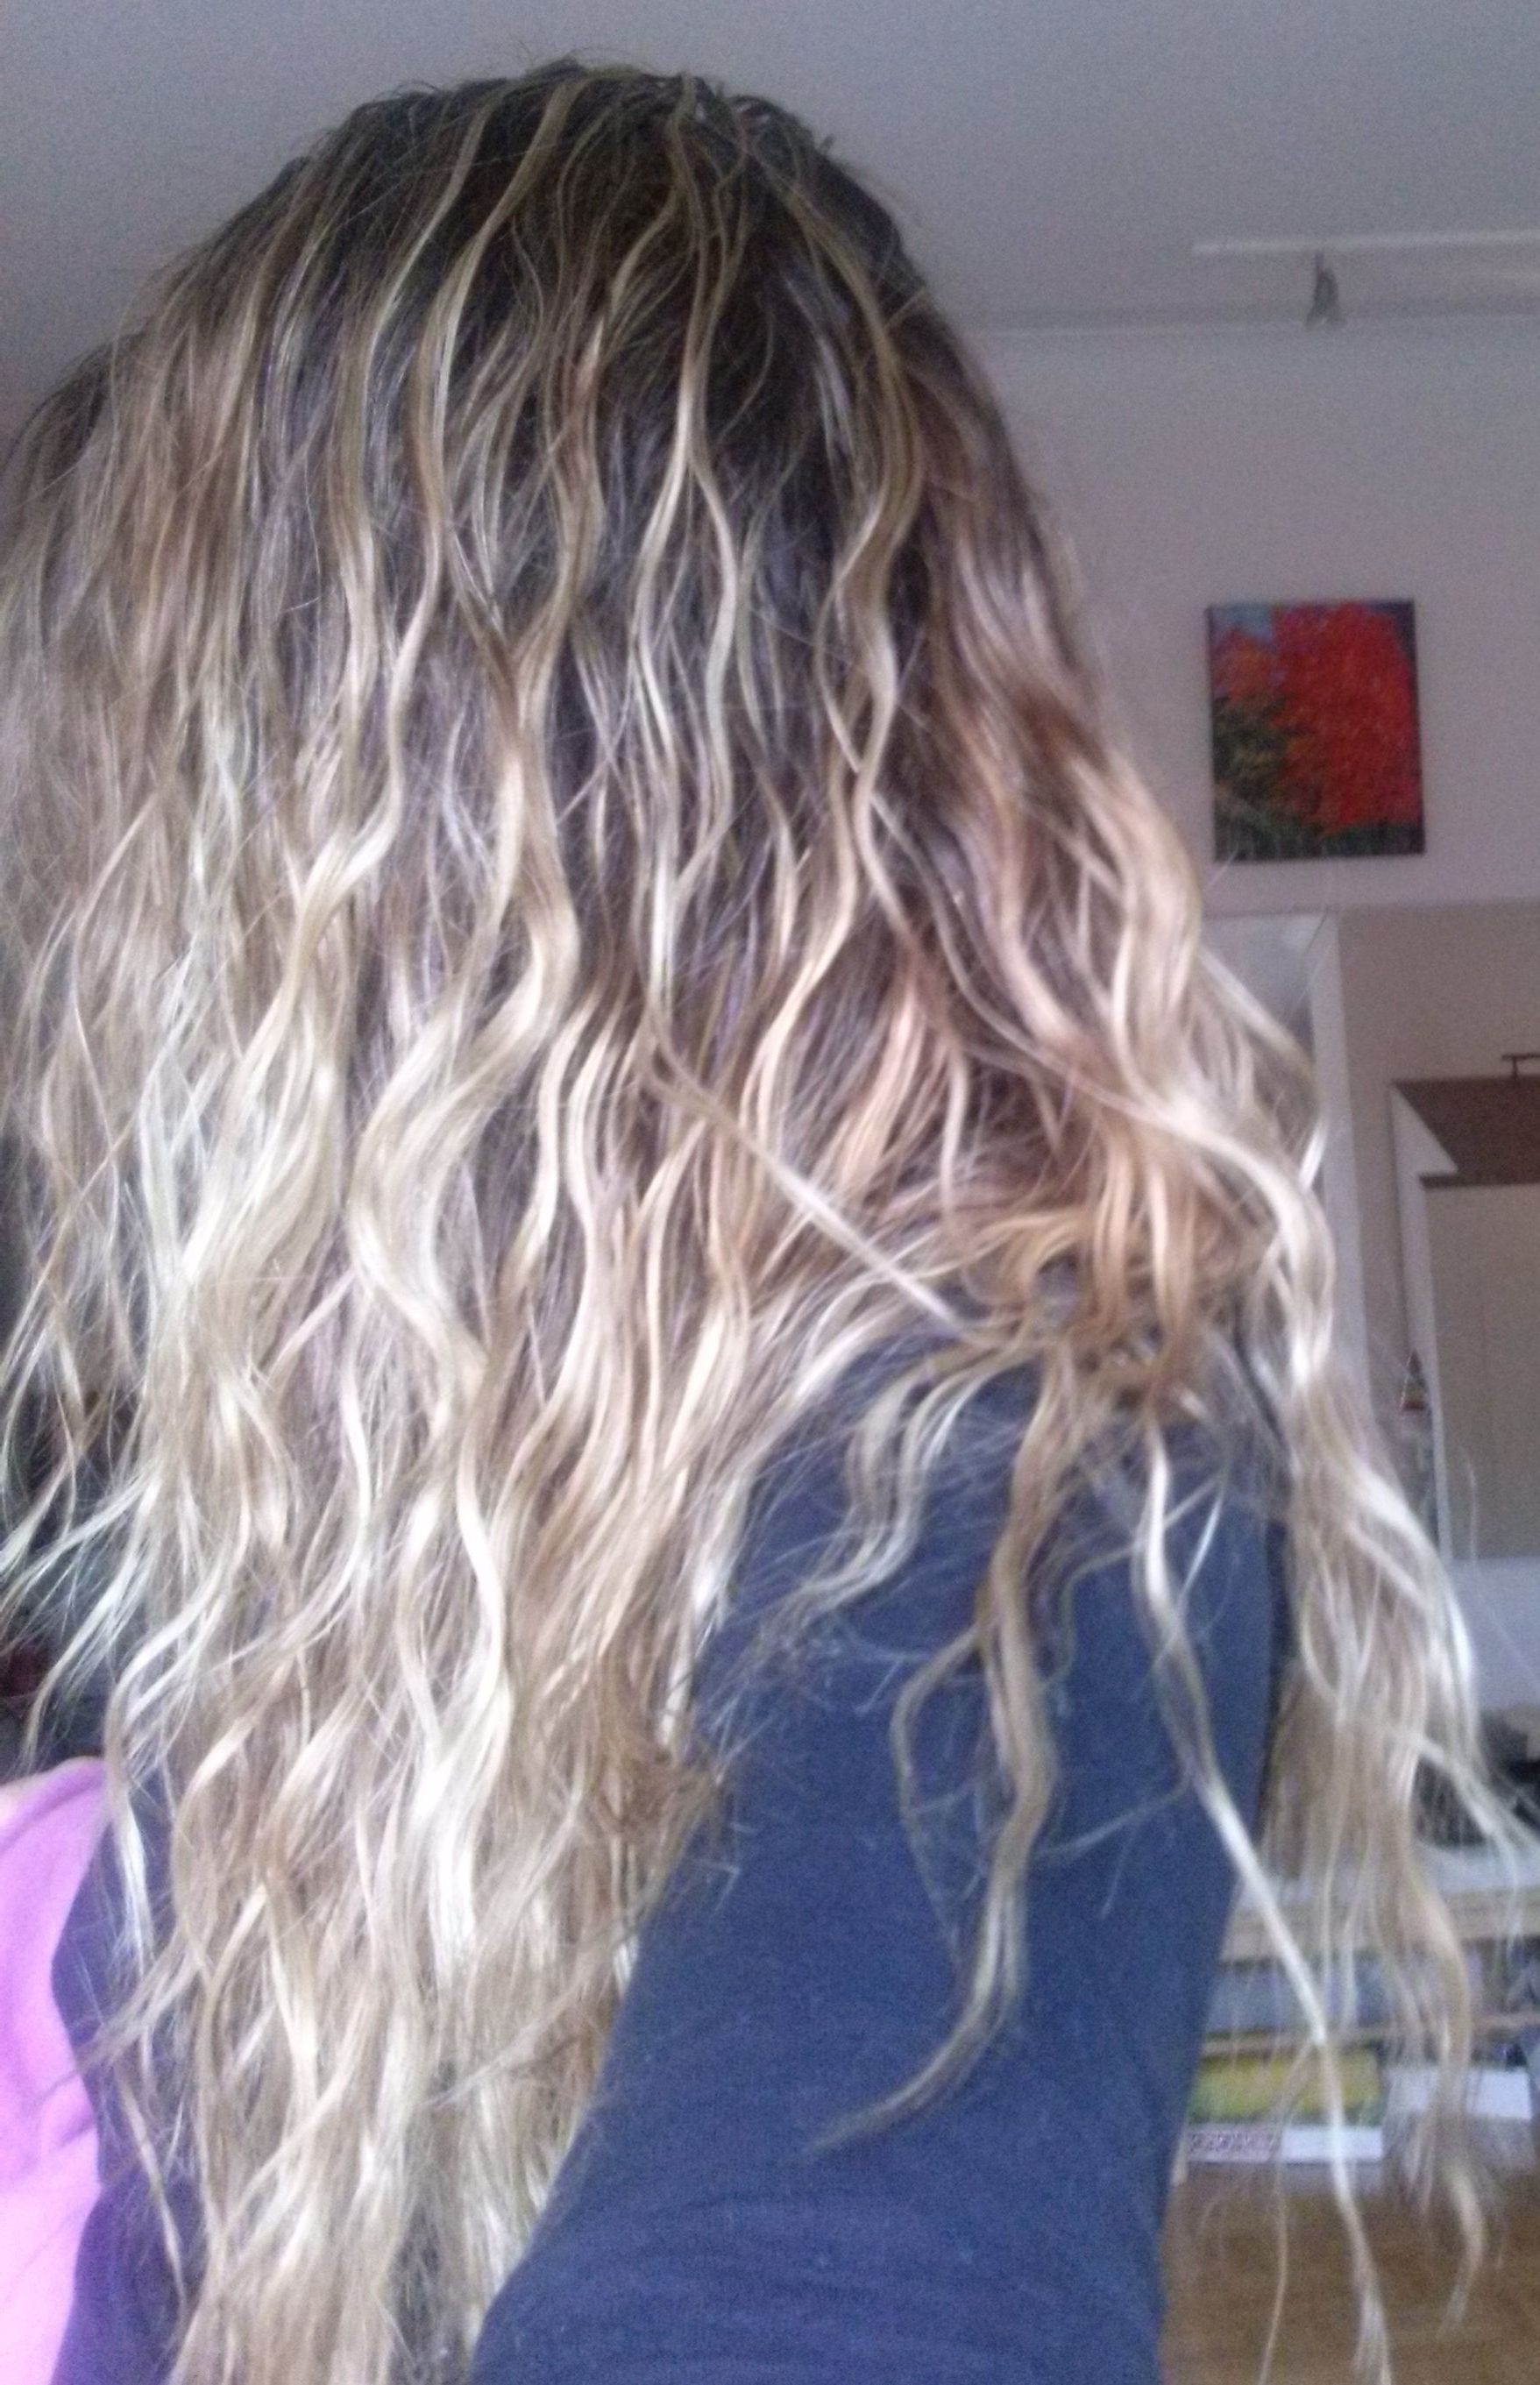 Dark Ash Blonde Ombre Hair I Have (Naturally Regarding Popular Dark Dishwater Blonde Hairstyles (View 9 of 20)